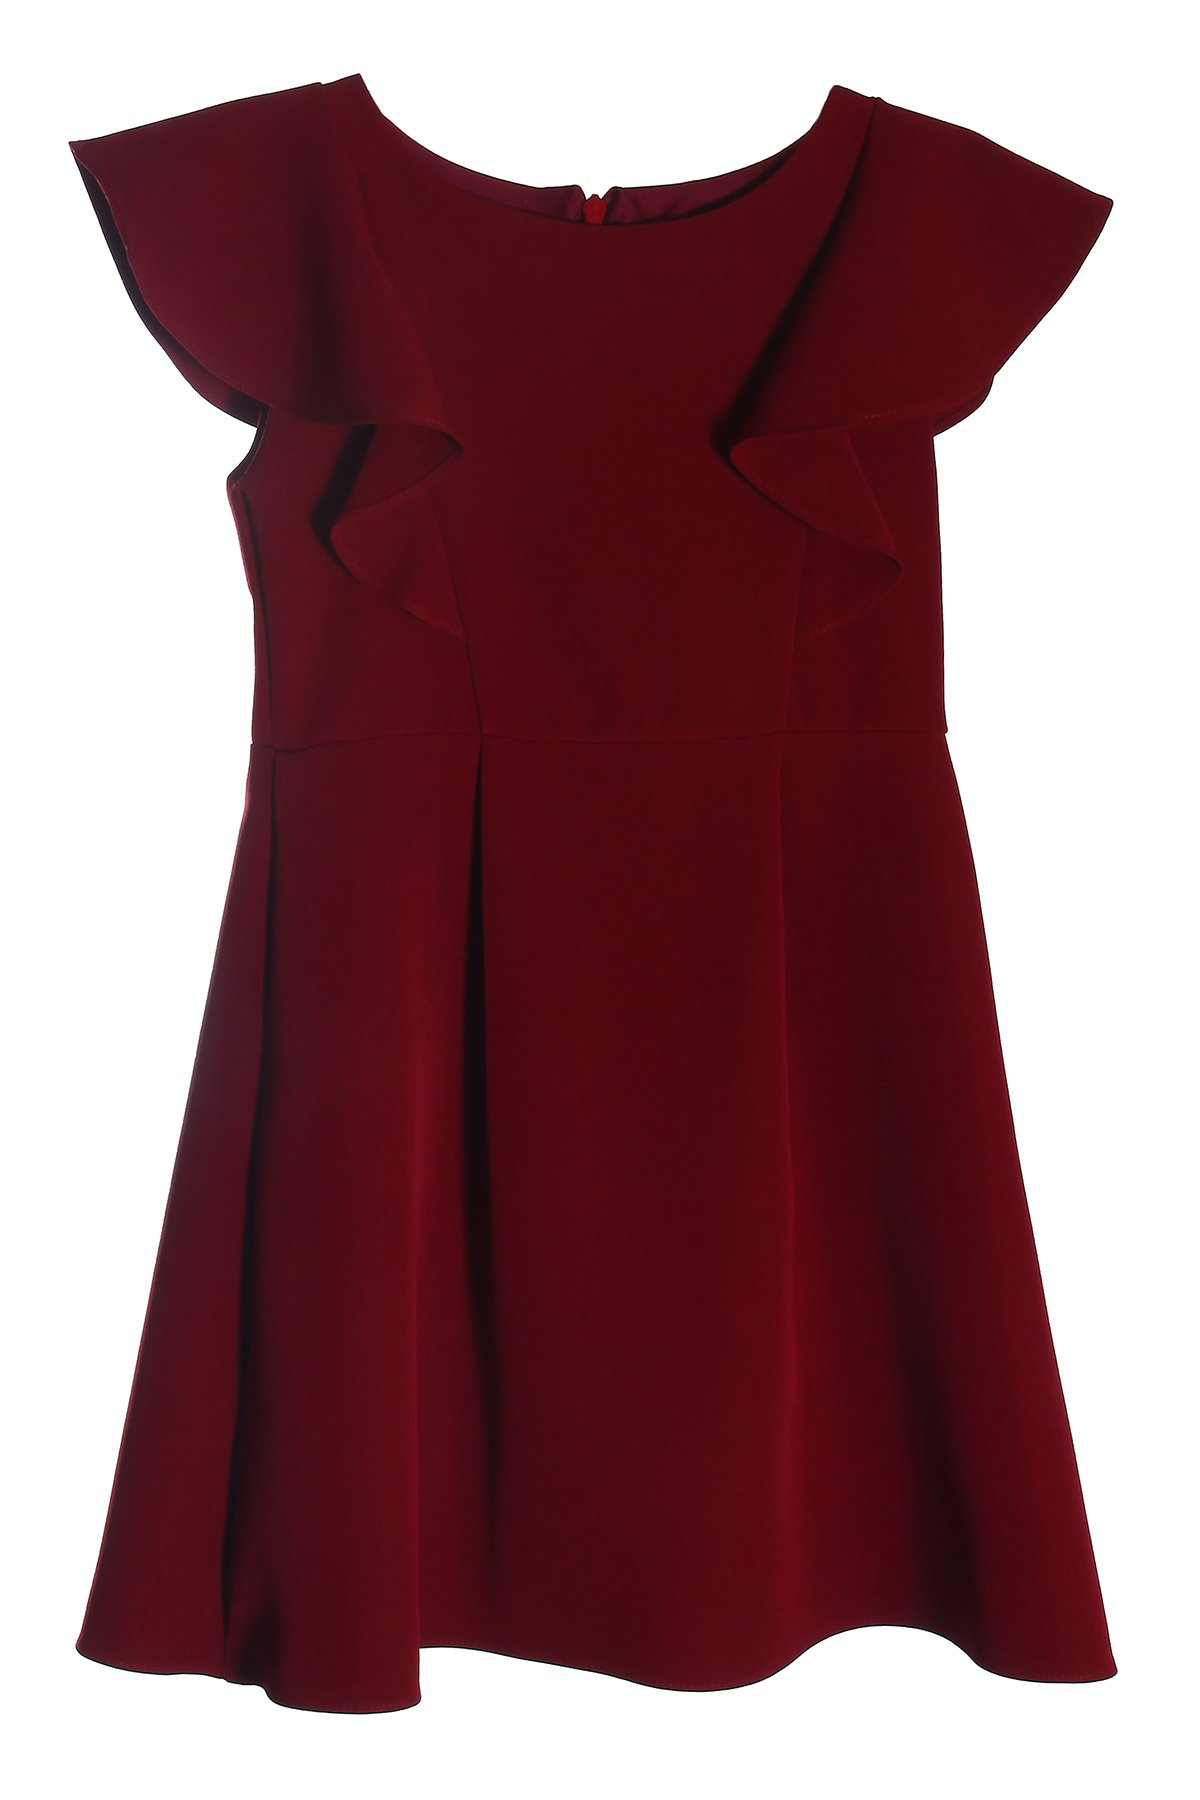 Little Girls' Burgundy School Uniform Princess Line Ruffle Dress Size 6